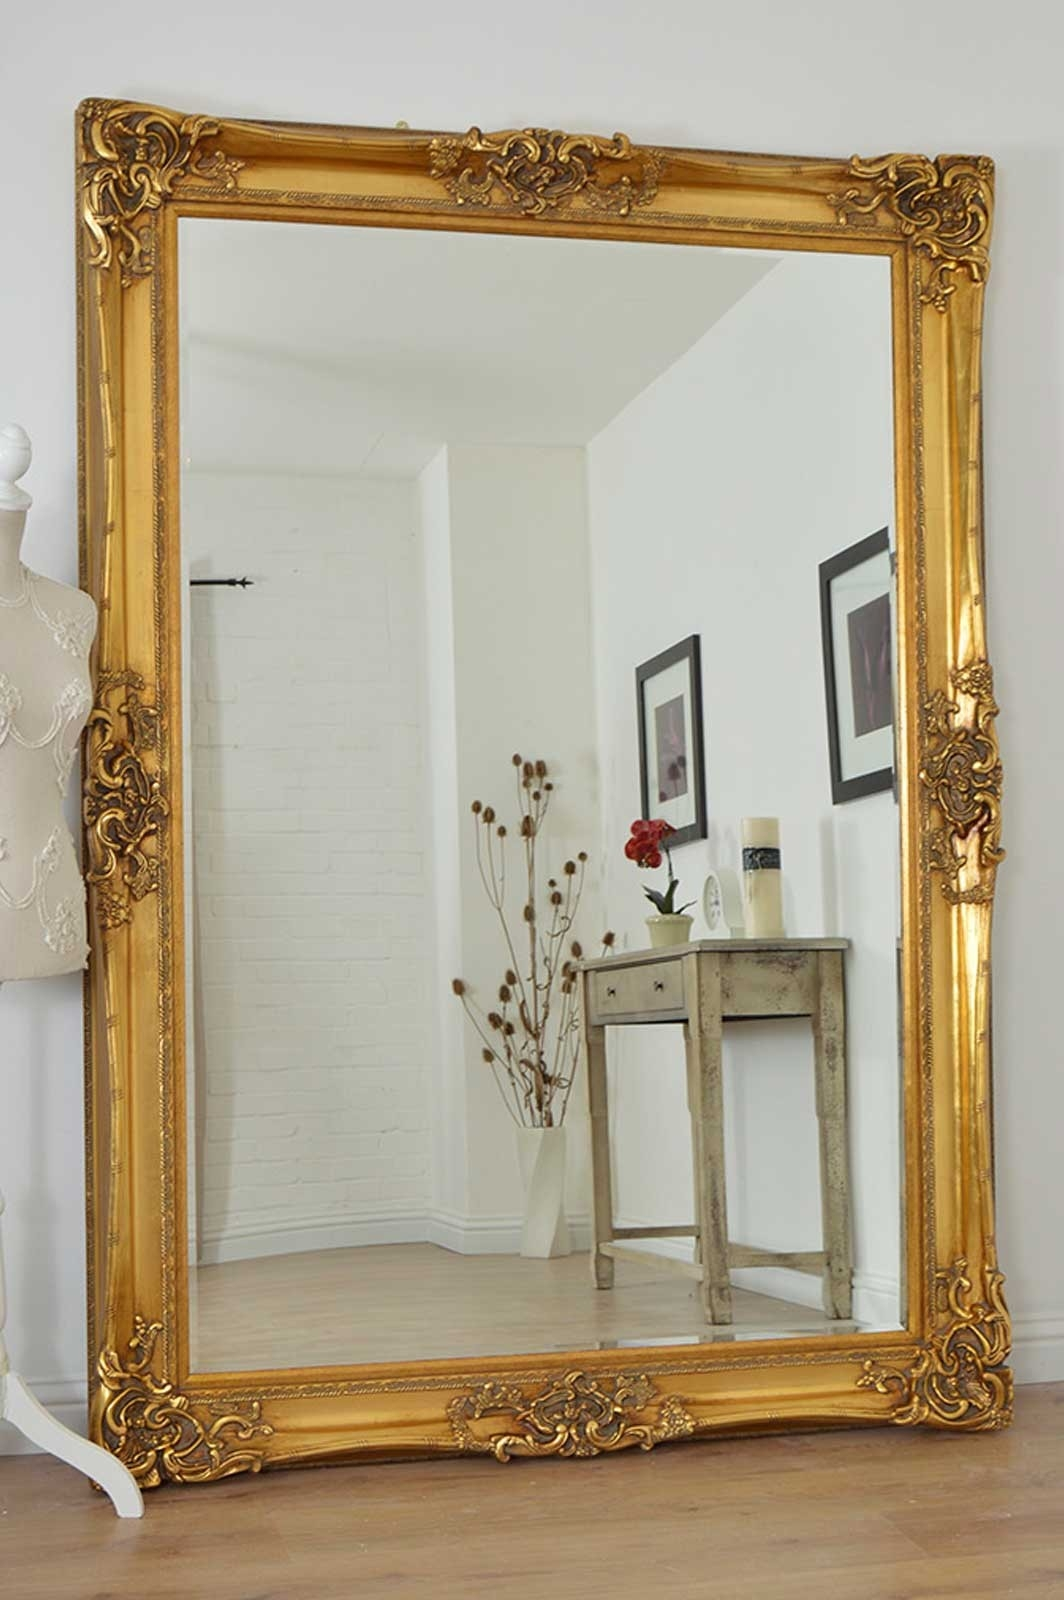 Large Gold Wall Mirror Wall Shelves Inside Modern Gold Mirror (Image 5 of 15)